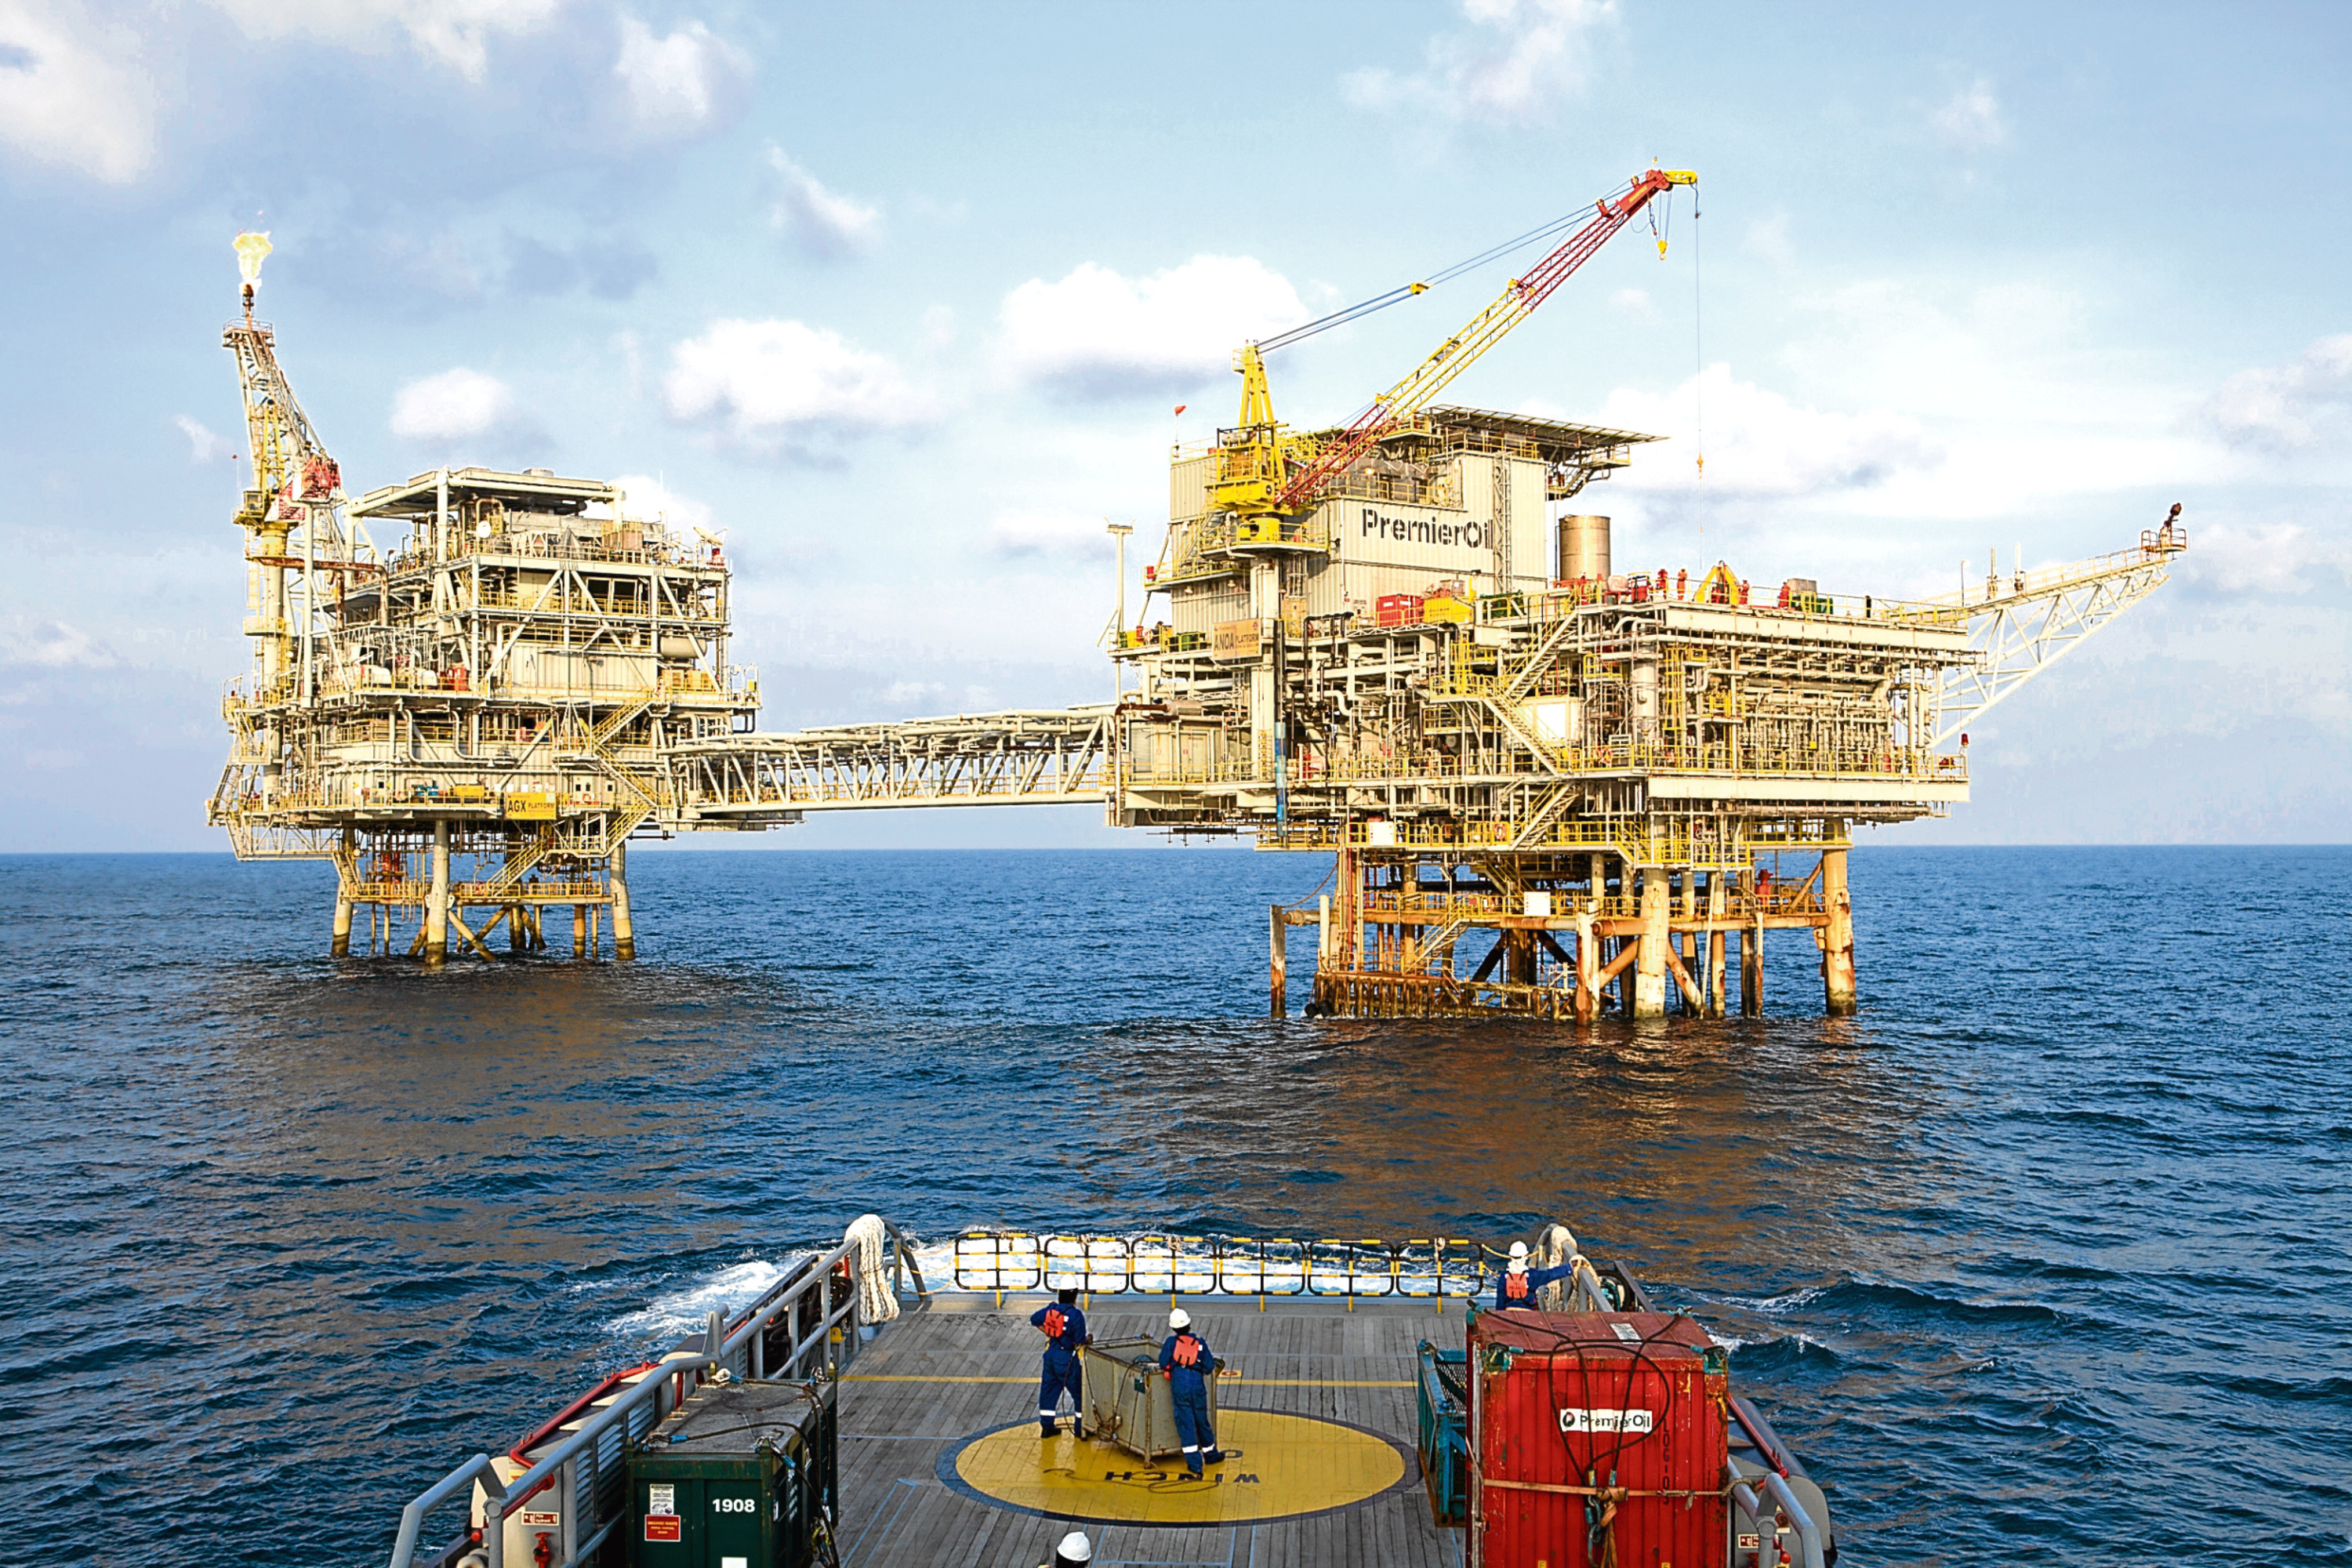 Premier Oil operations in Indonesia. The company has a global profile and has a significant presence in the UK North Sea.